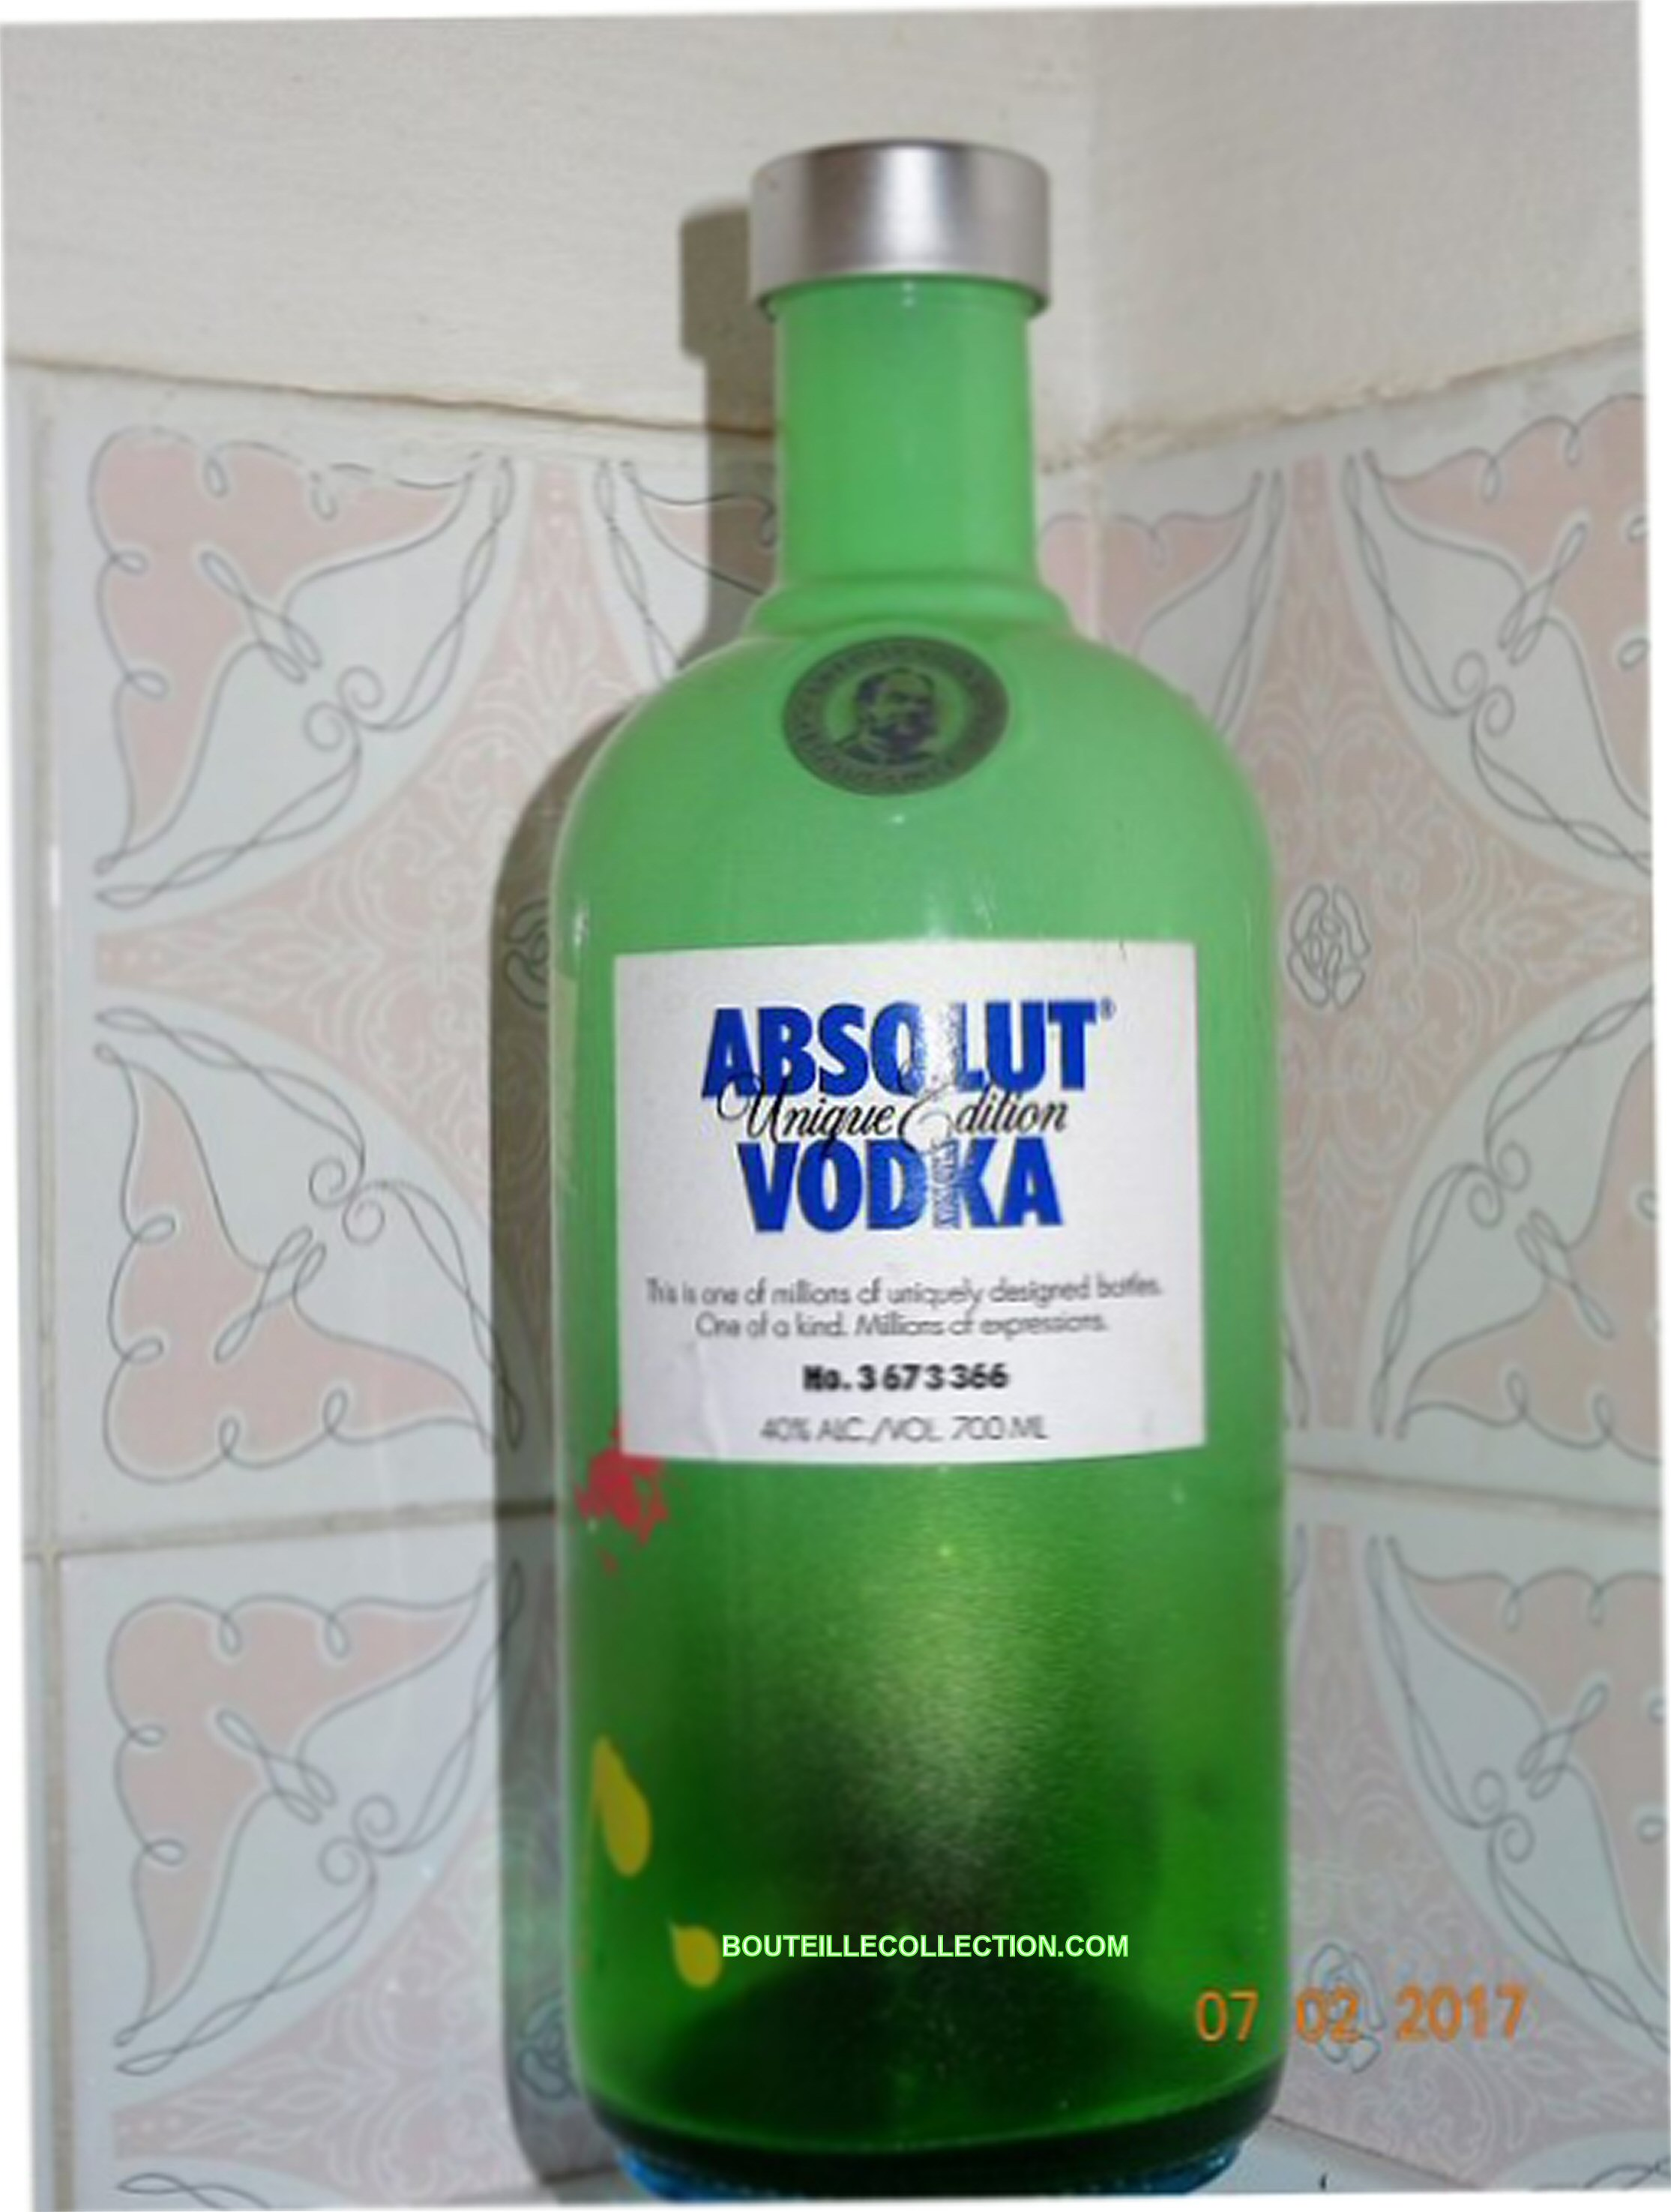 ABSOLUT UNIQUE EDITION 70CL CA 366 .JPG